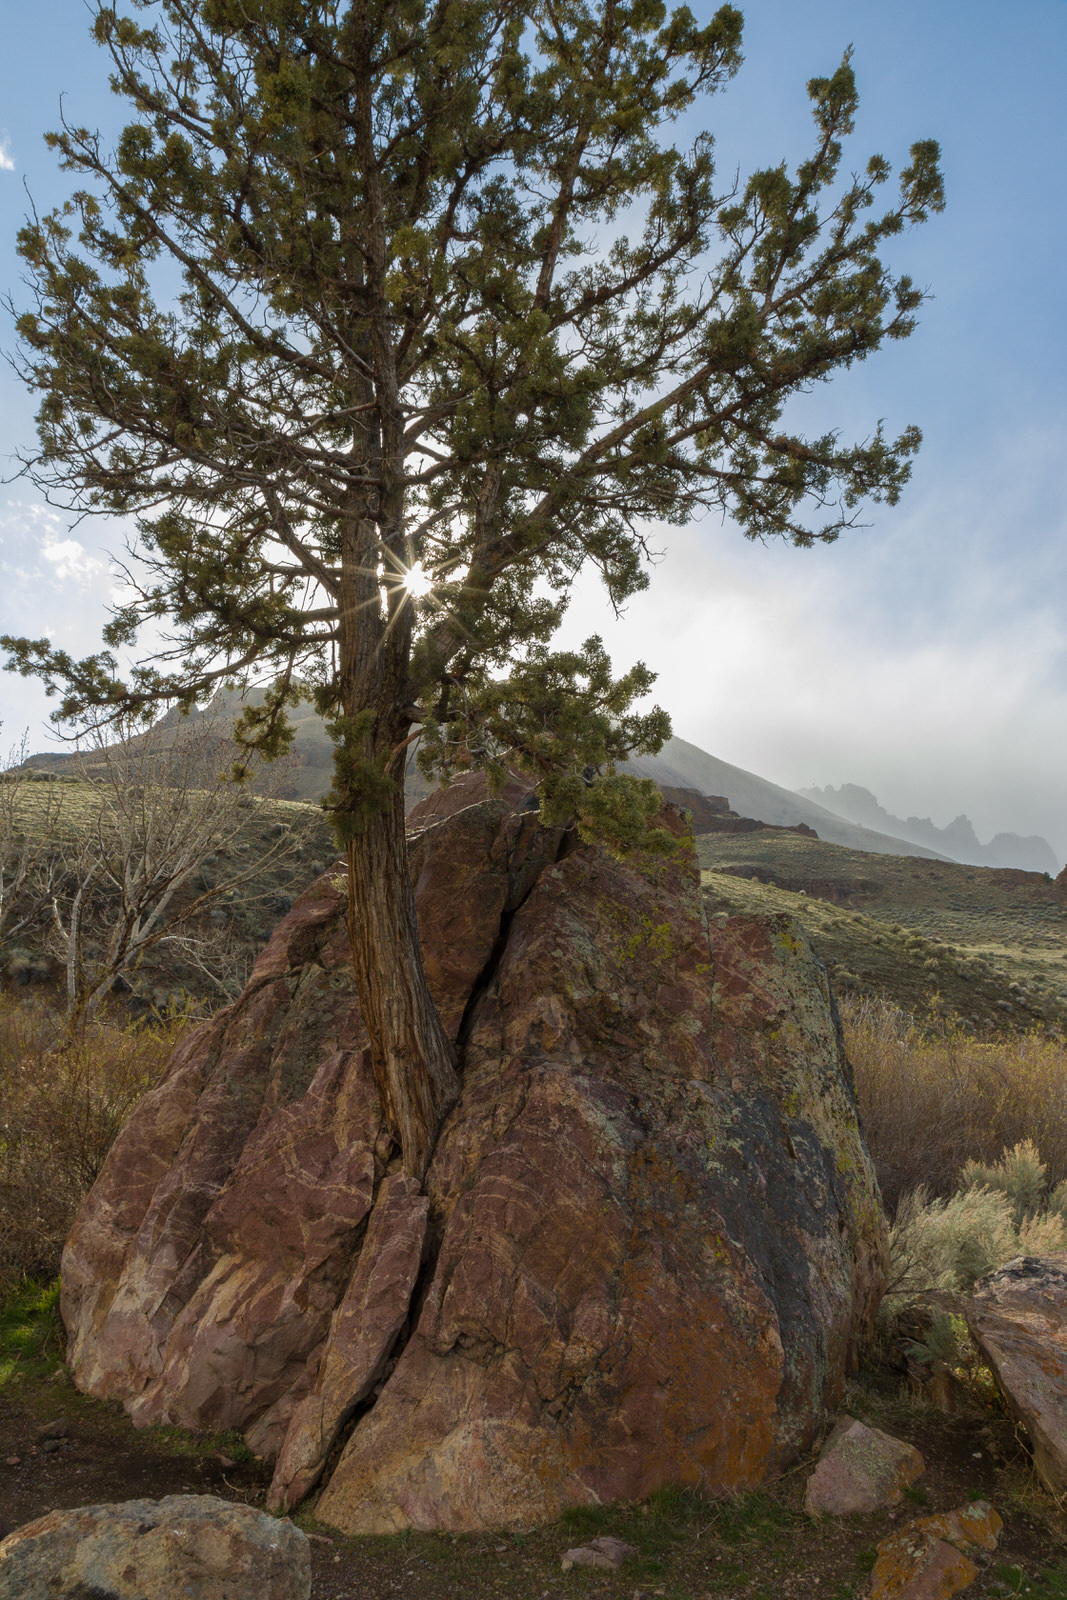 Juniper Tree Growing out of a Rock in the Steens Mountains